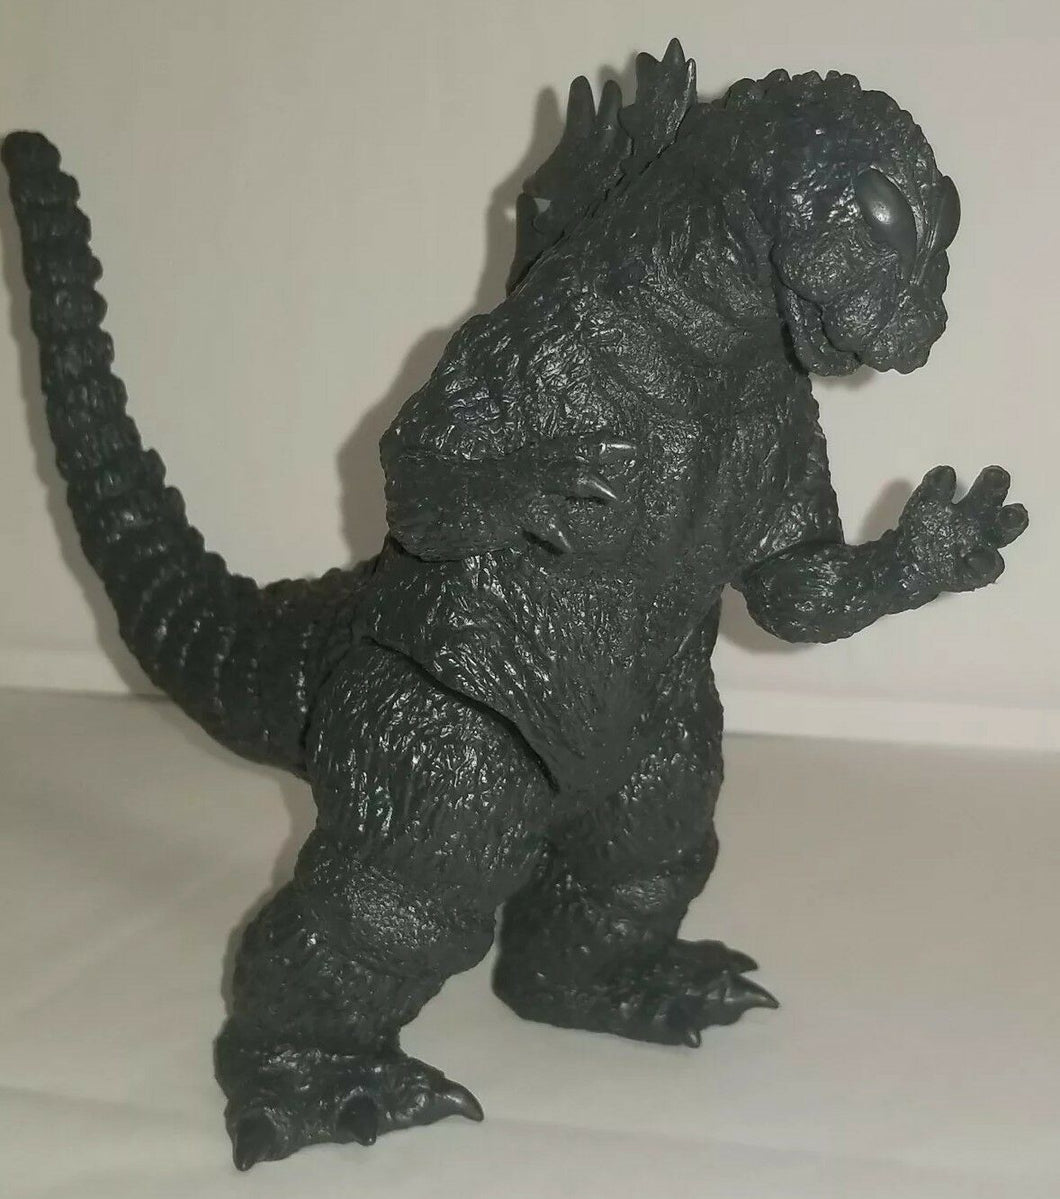 Y-MSF GODZILLA 1964 SIX inch figure from Japan RARE unpainted prototype